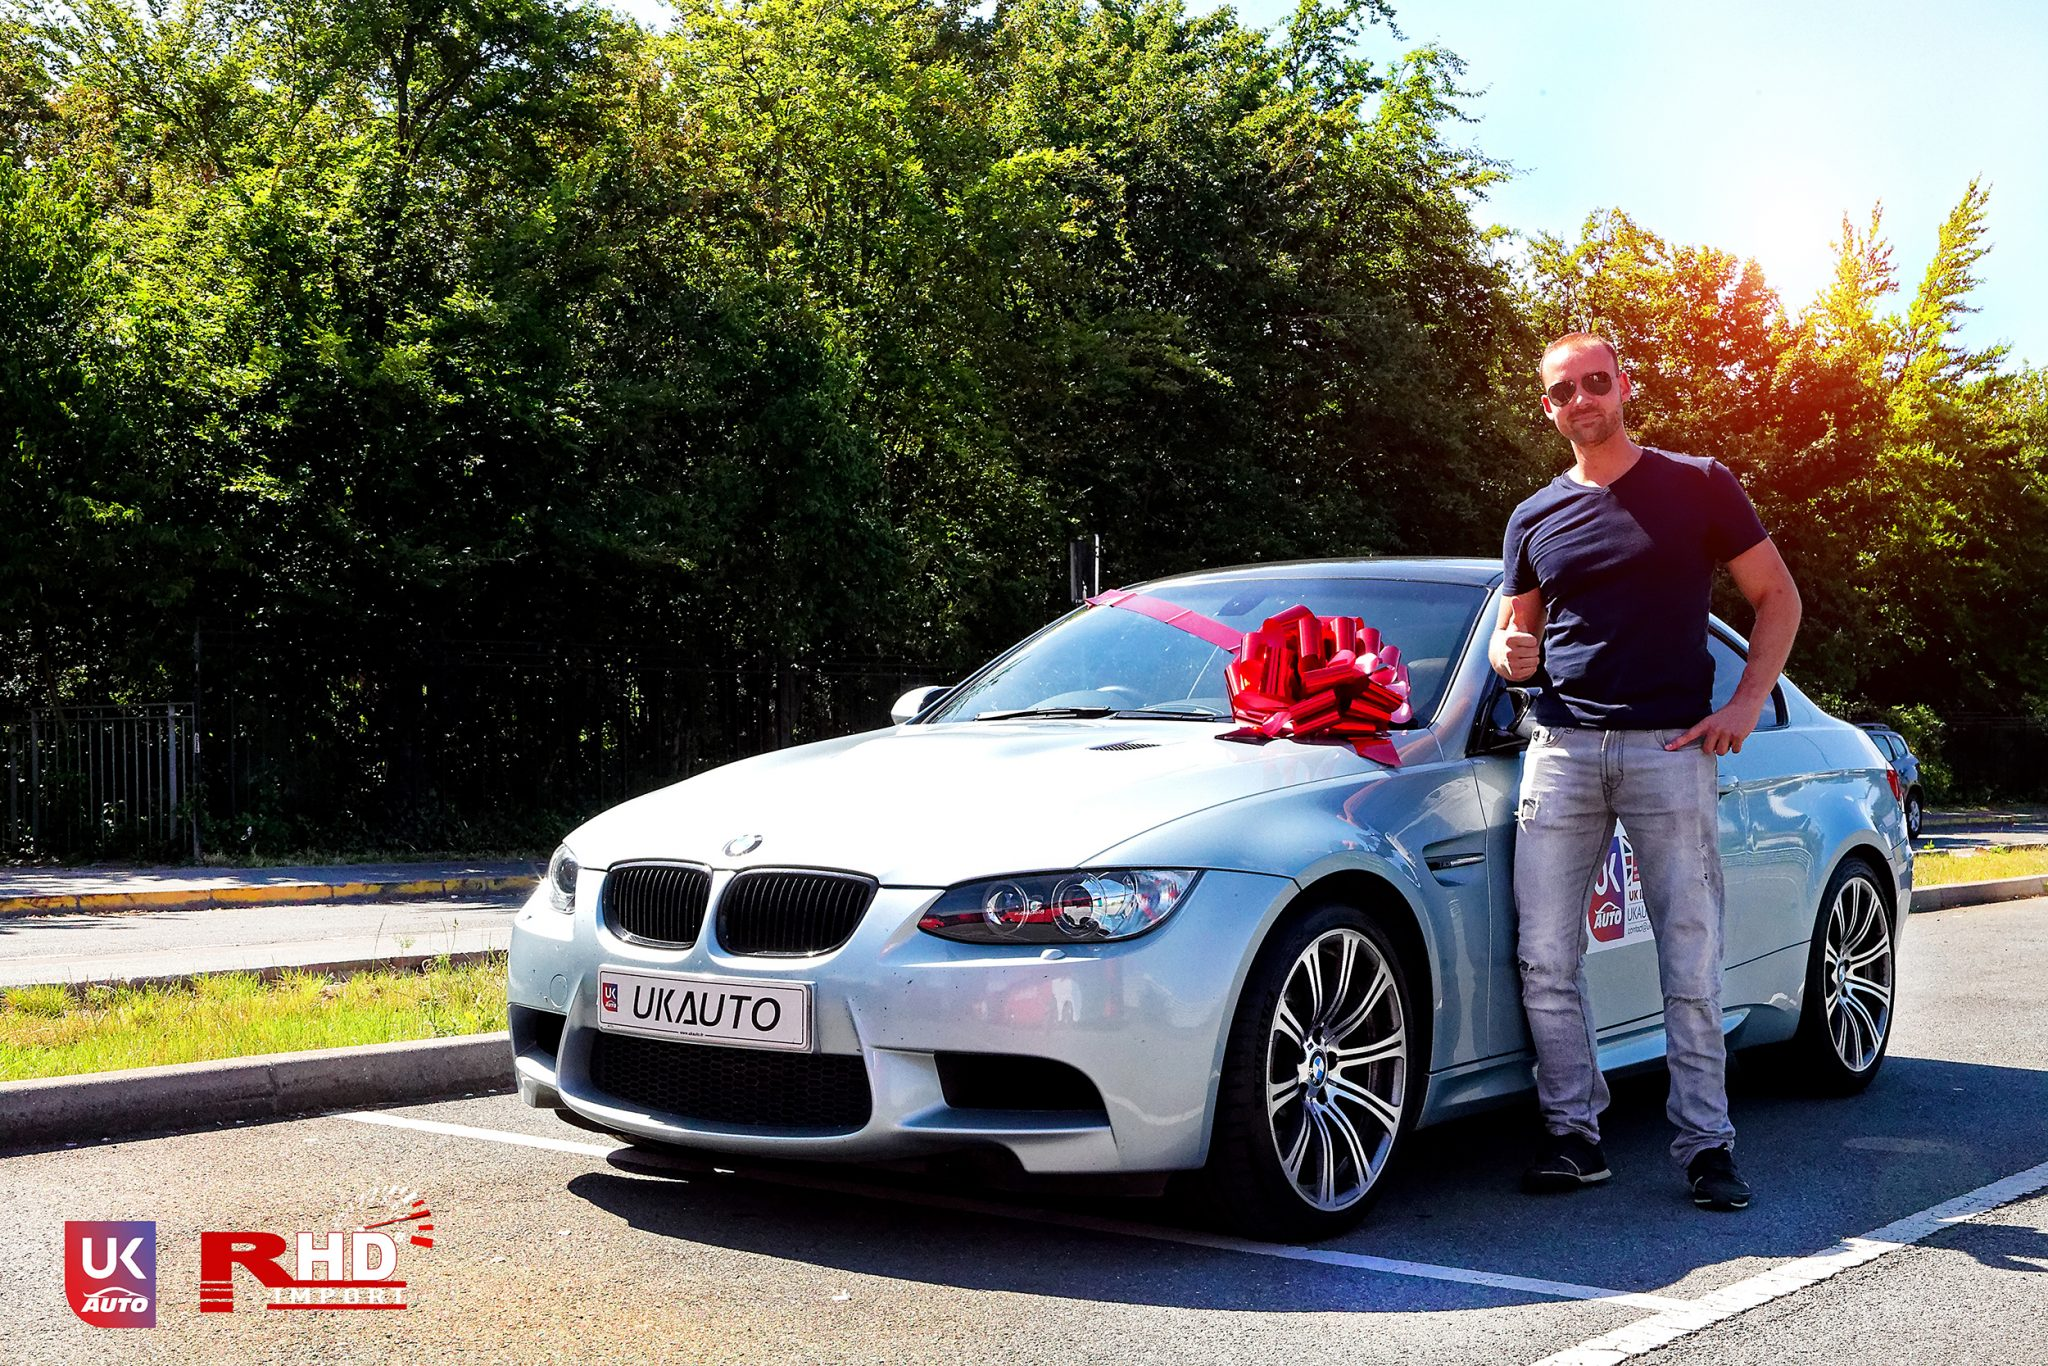 ukauto uk import bmw angleterre bmw m3 rhd e92 v8 mandataire uk angleterre voiture13 - Felicitation a Philippe BMW M3 E92 RHD POUR IMPORTER UNE VOITURE EN ANGLETERRE